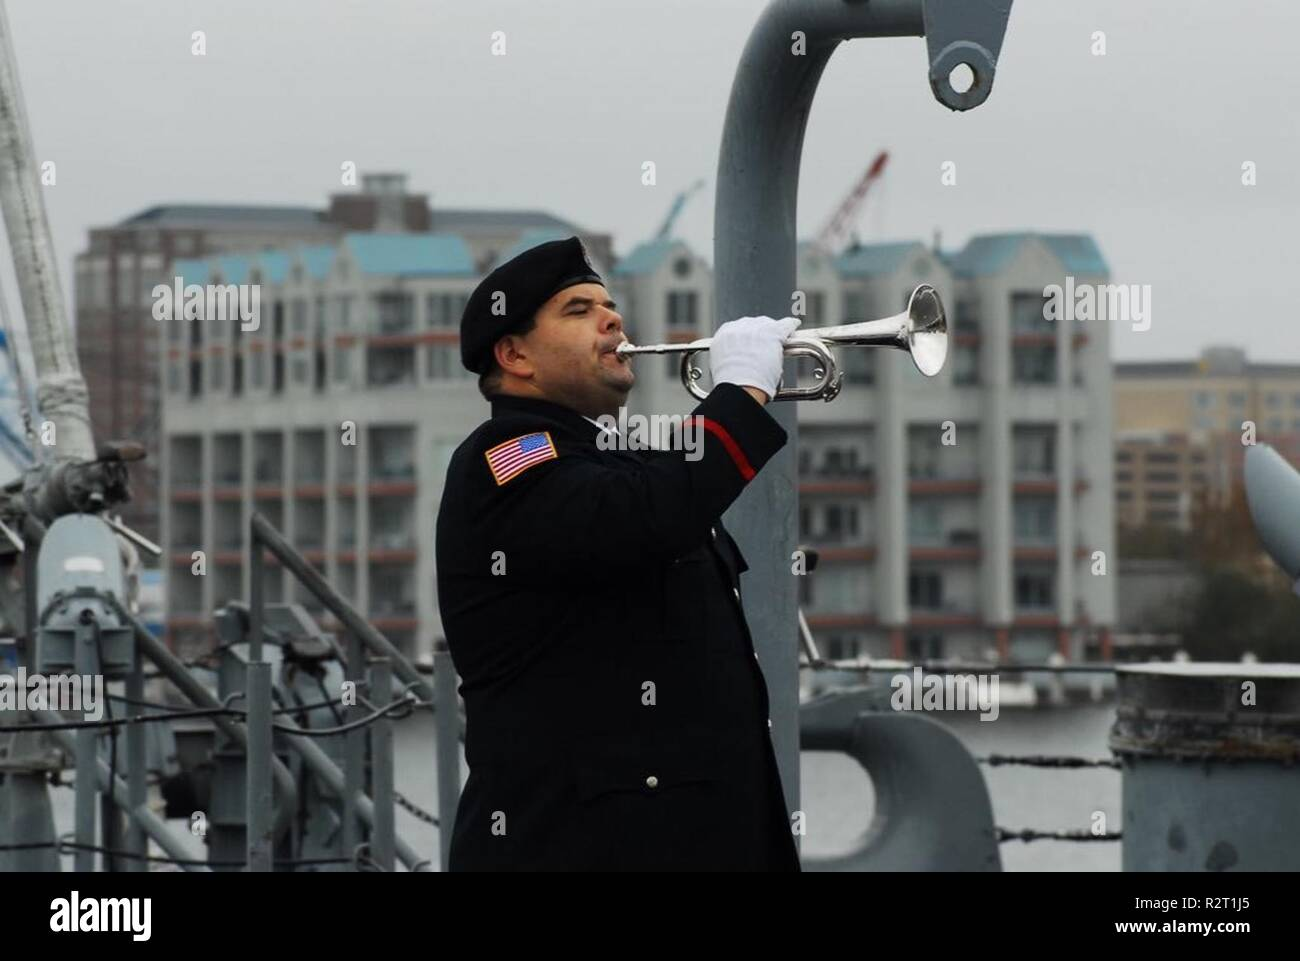 91047b8a7e9 The Hampton Roads Naval Museum held a ceremony aboard the fantail of the  USS Wisconsin (BB 64) to mark the signing of the armistice that ended the  First ...